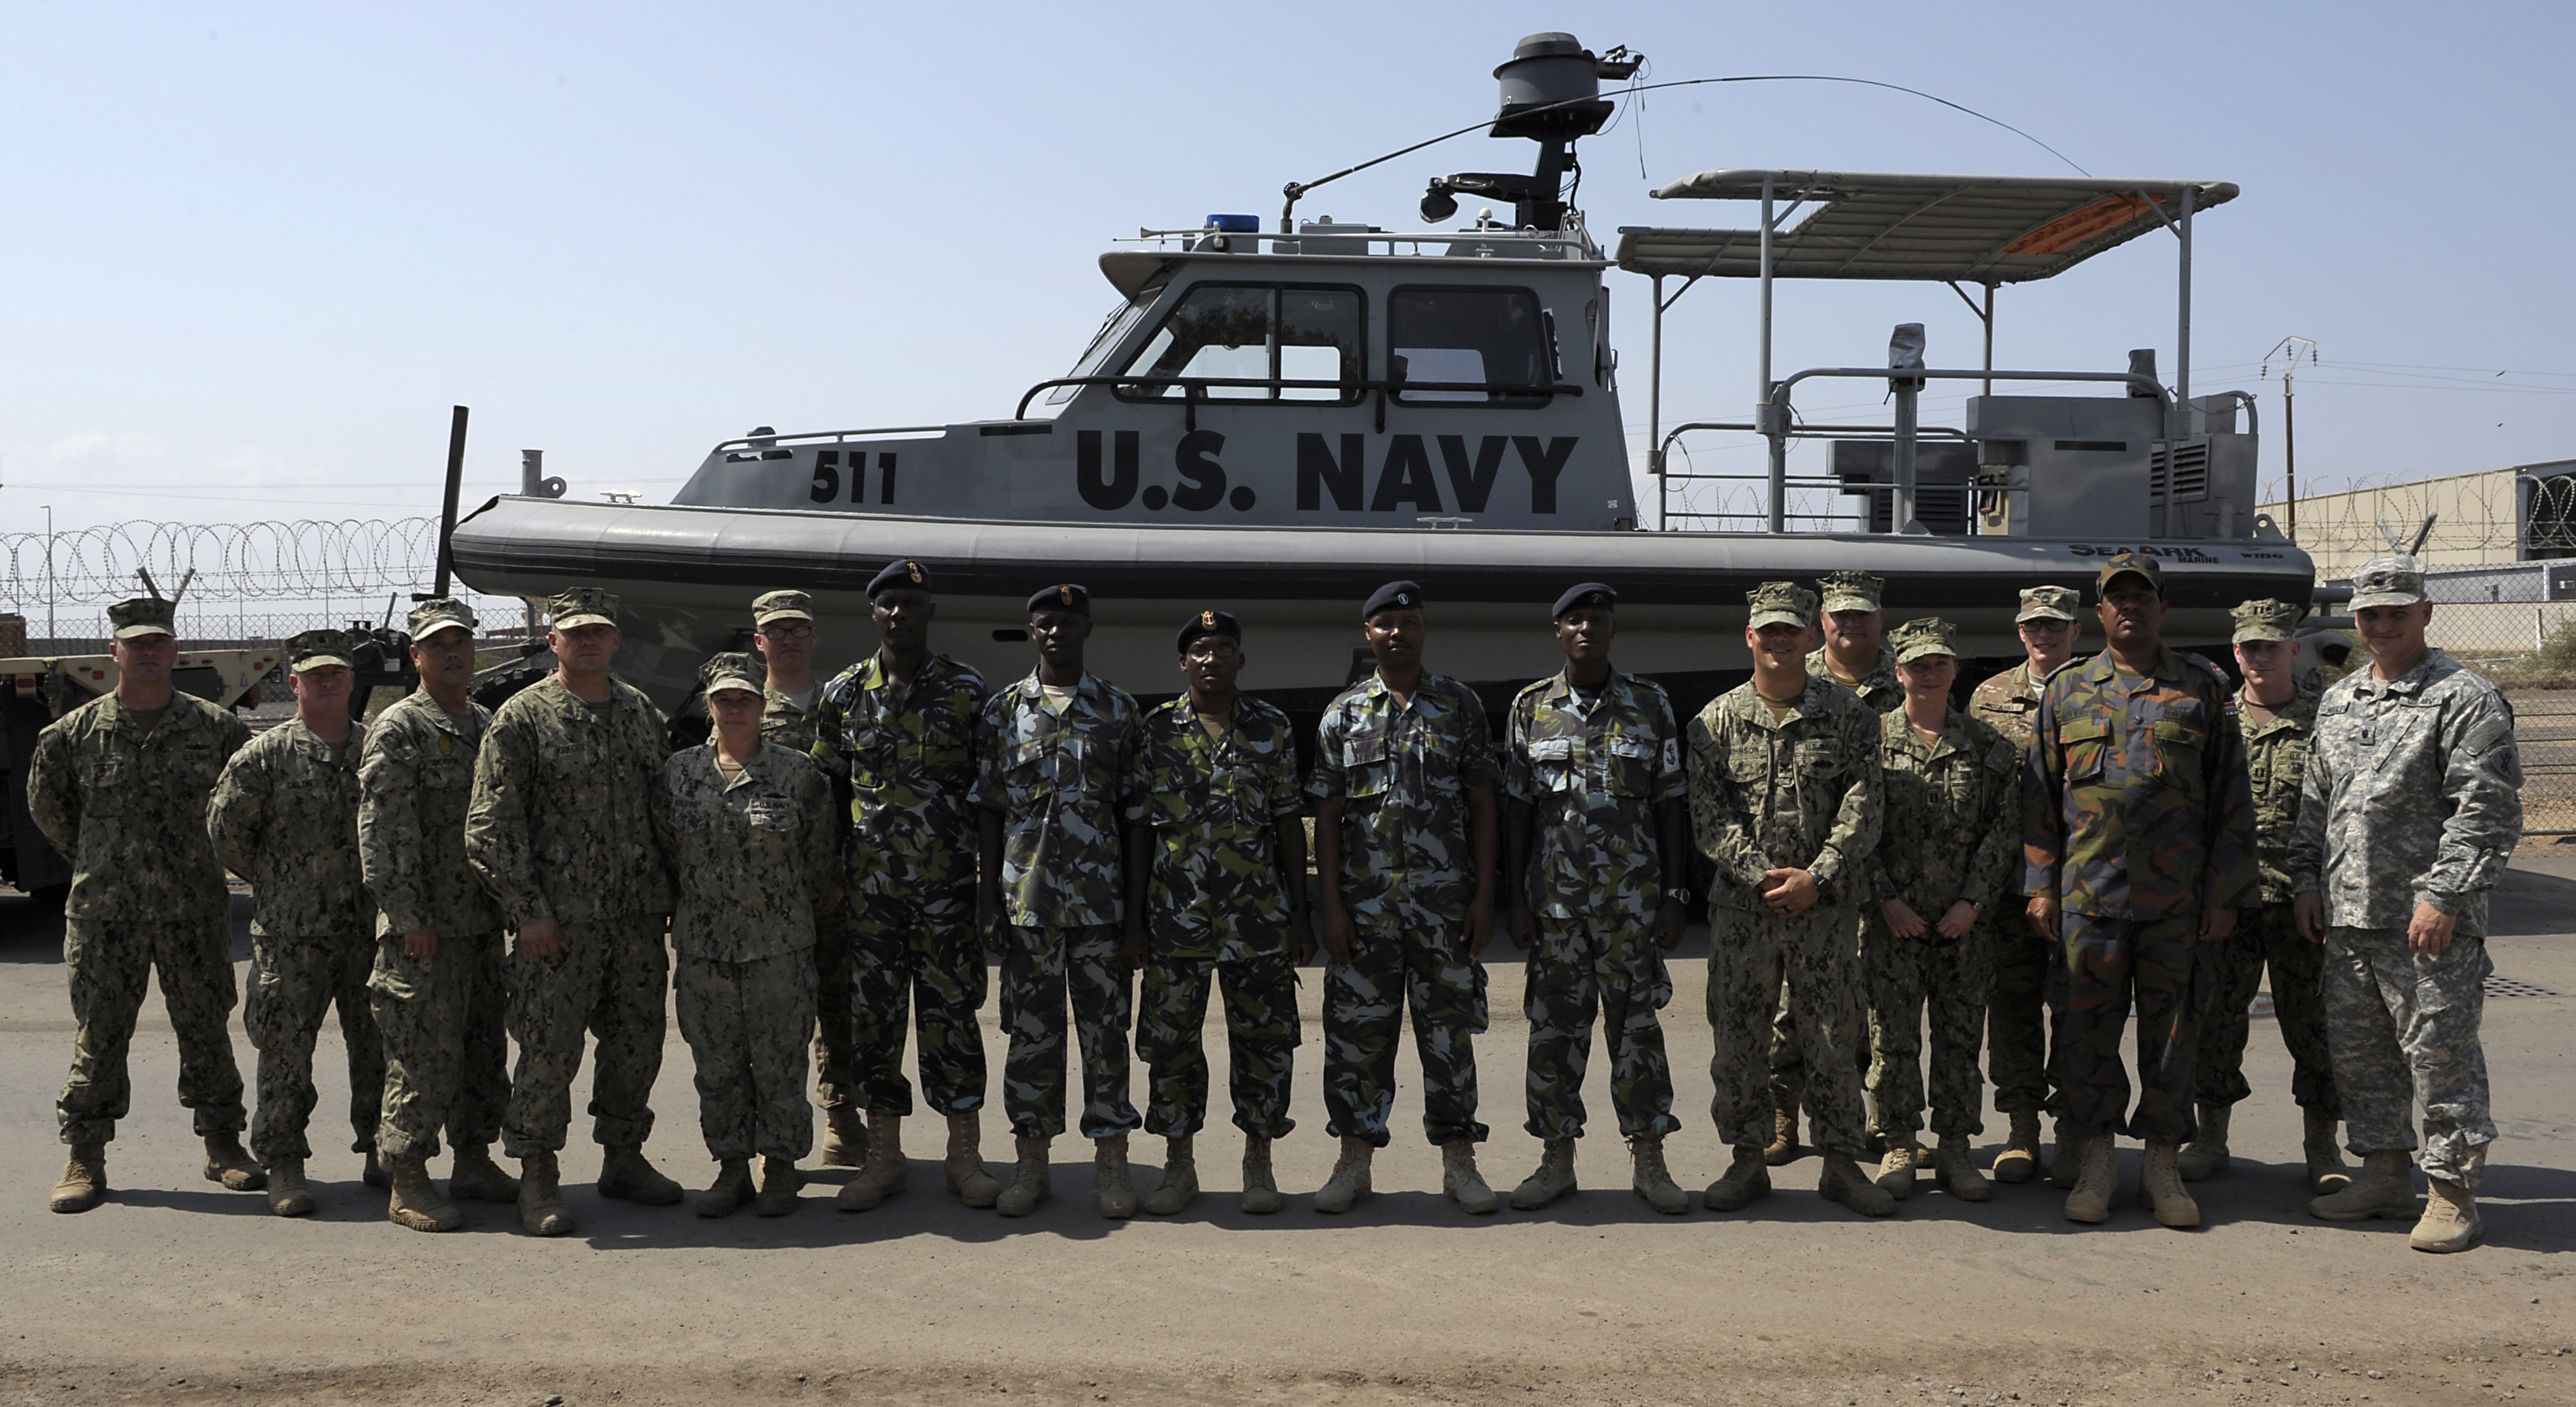 Members of the Kenya Defence Forces Navy and Coastal Riverine Squadron 10 pose for a photo after the conclusion of a two-day maintenance and organization seminar held at Camp Lemonnier, Djibouti, Jan. 18, 2016. The seminar was organized to share best practices on maintenance, organization, troubleshooting, and casualties while underway. (U.S. Air Force photo by Tech. Sgt. Dan DeCook)